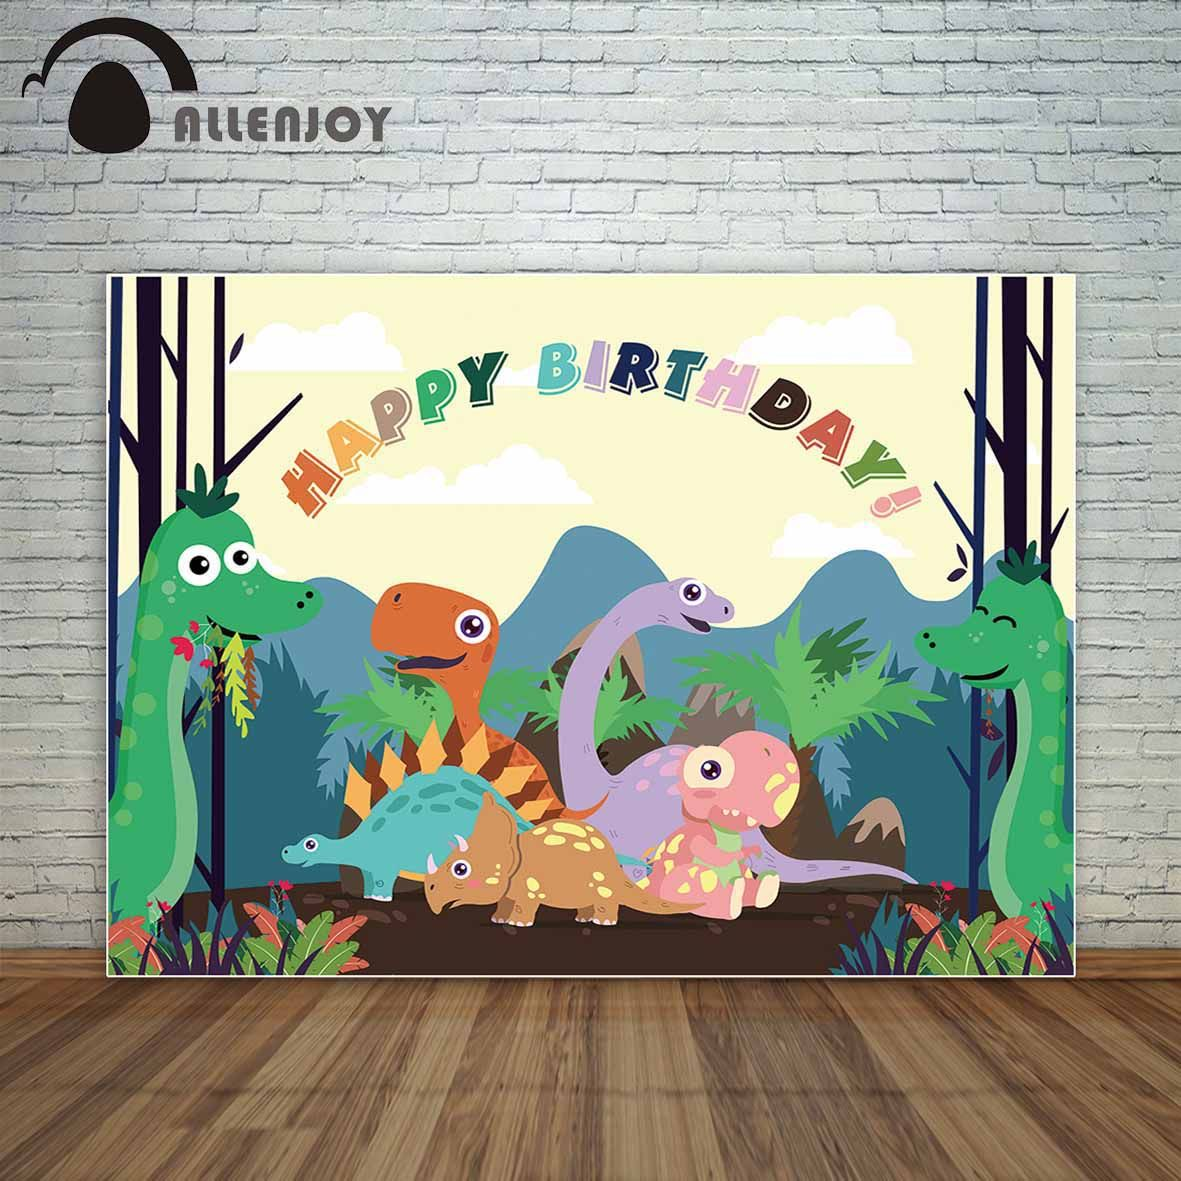 Yeele Cute Dinosaurs Backdrop 5x3ft Kids Dino Party Birthday Photography Backdrop Kids Adults Artistic Portrait Photo Booth Banner Room Decoration Kids Acting Show Photoshoot Props Wallpaper